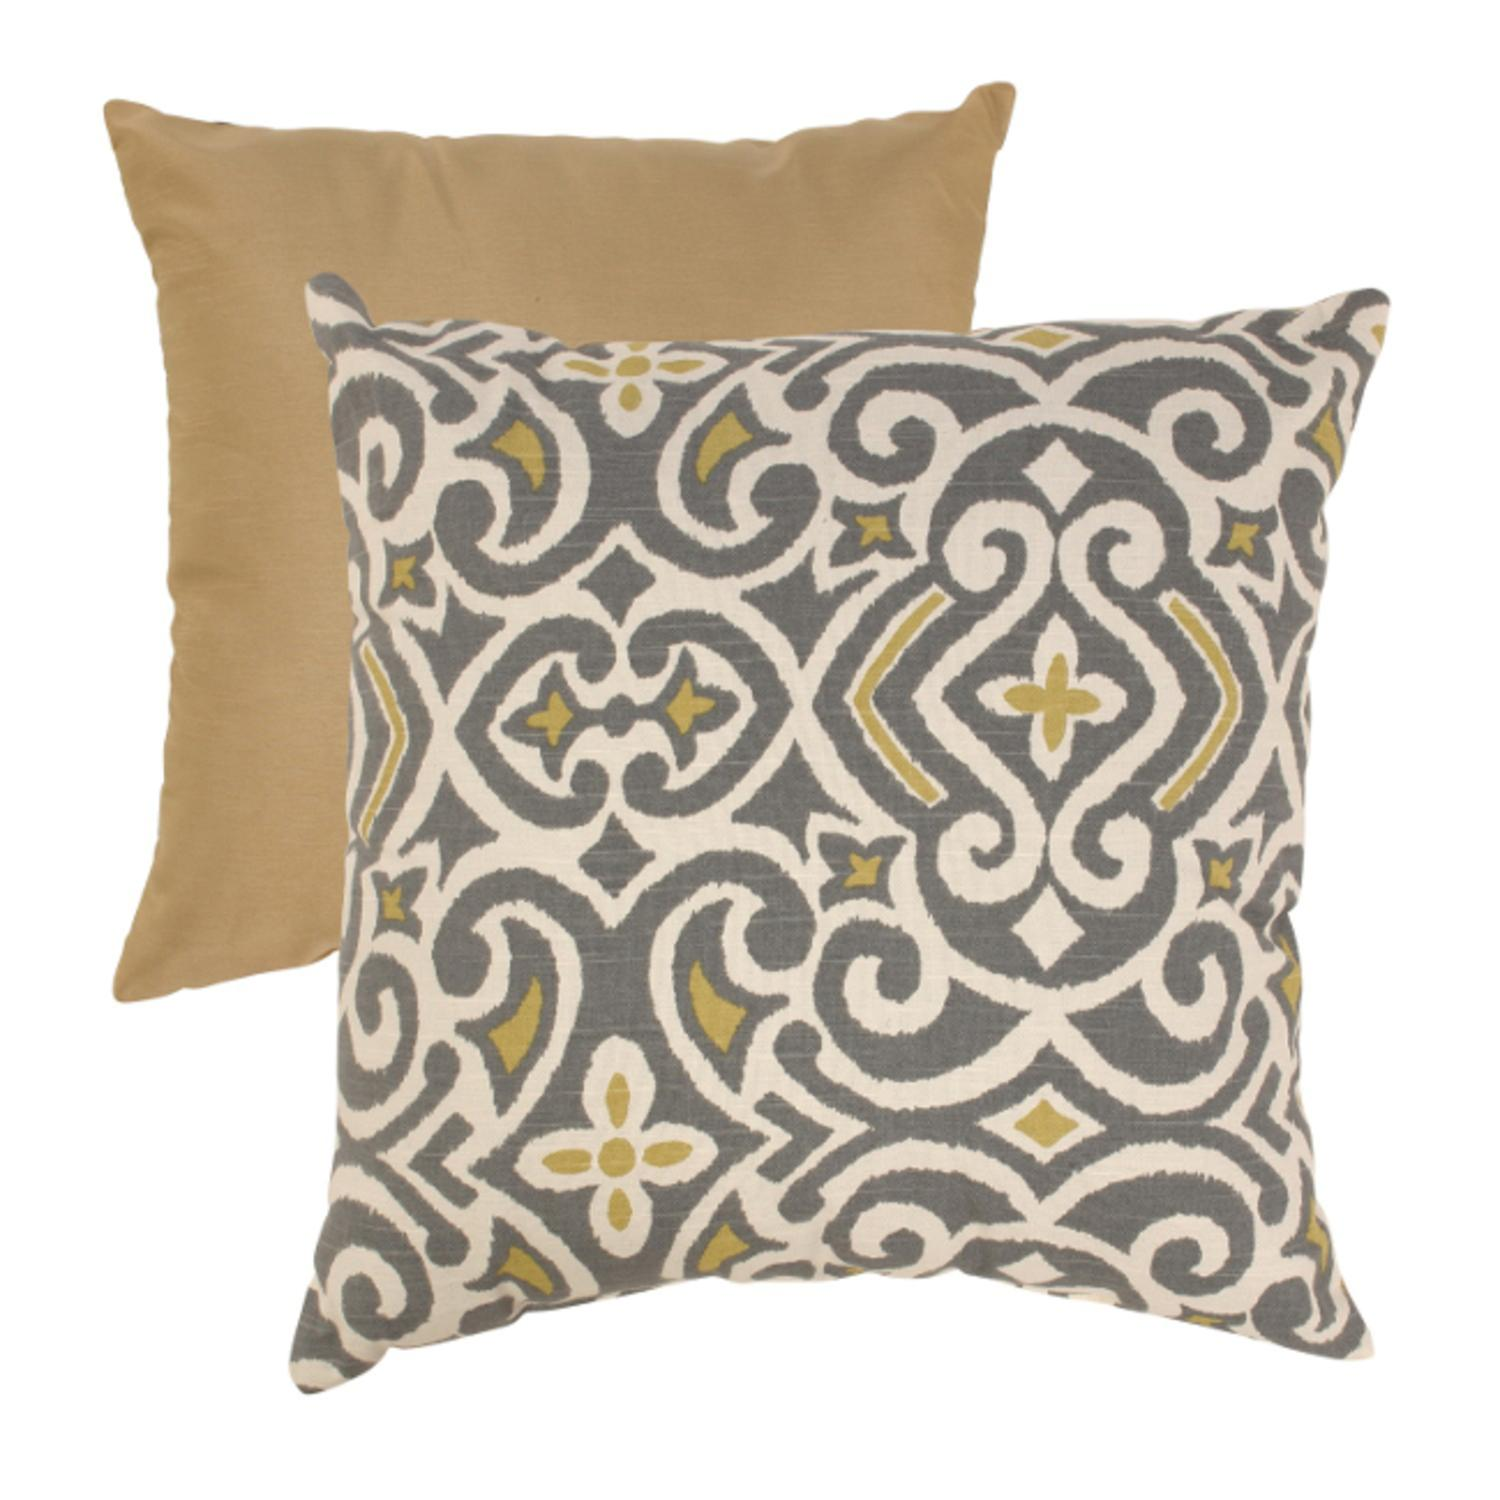 "18"" Graphite & Chartreuse Damask Pattern Square Throw Pillow"